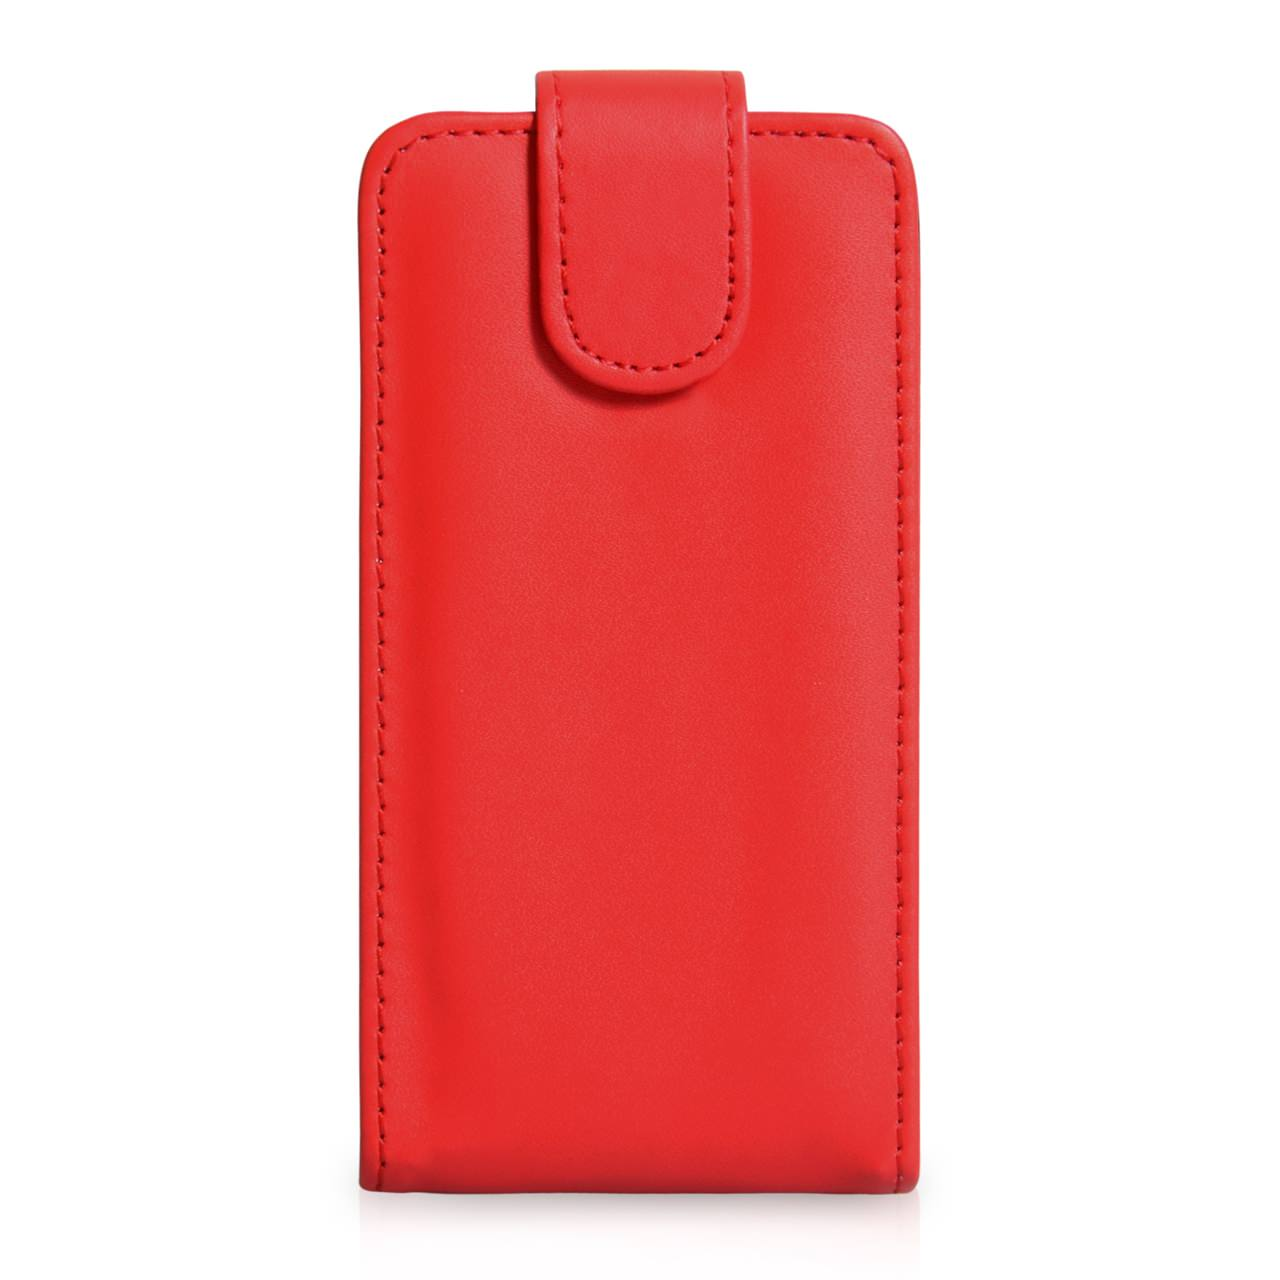 YouSave Accessories Sony Xperia SP Leather-Effect Flip Case - Red